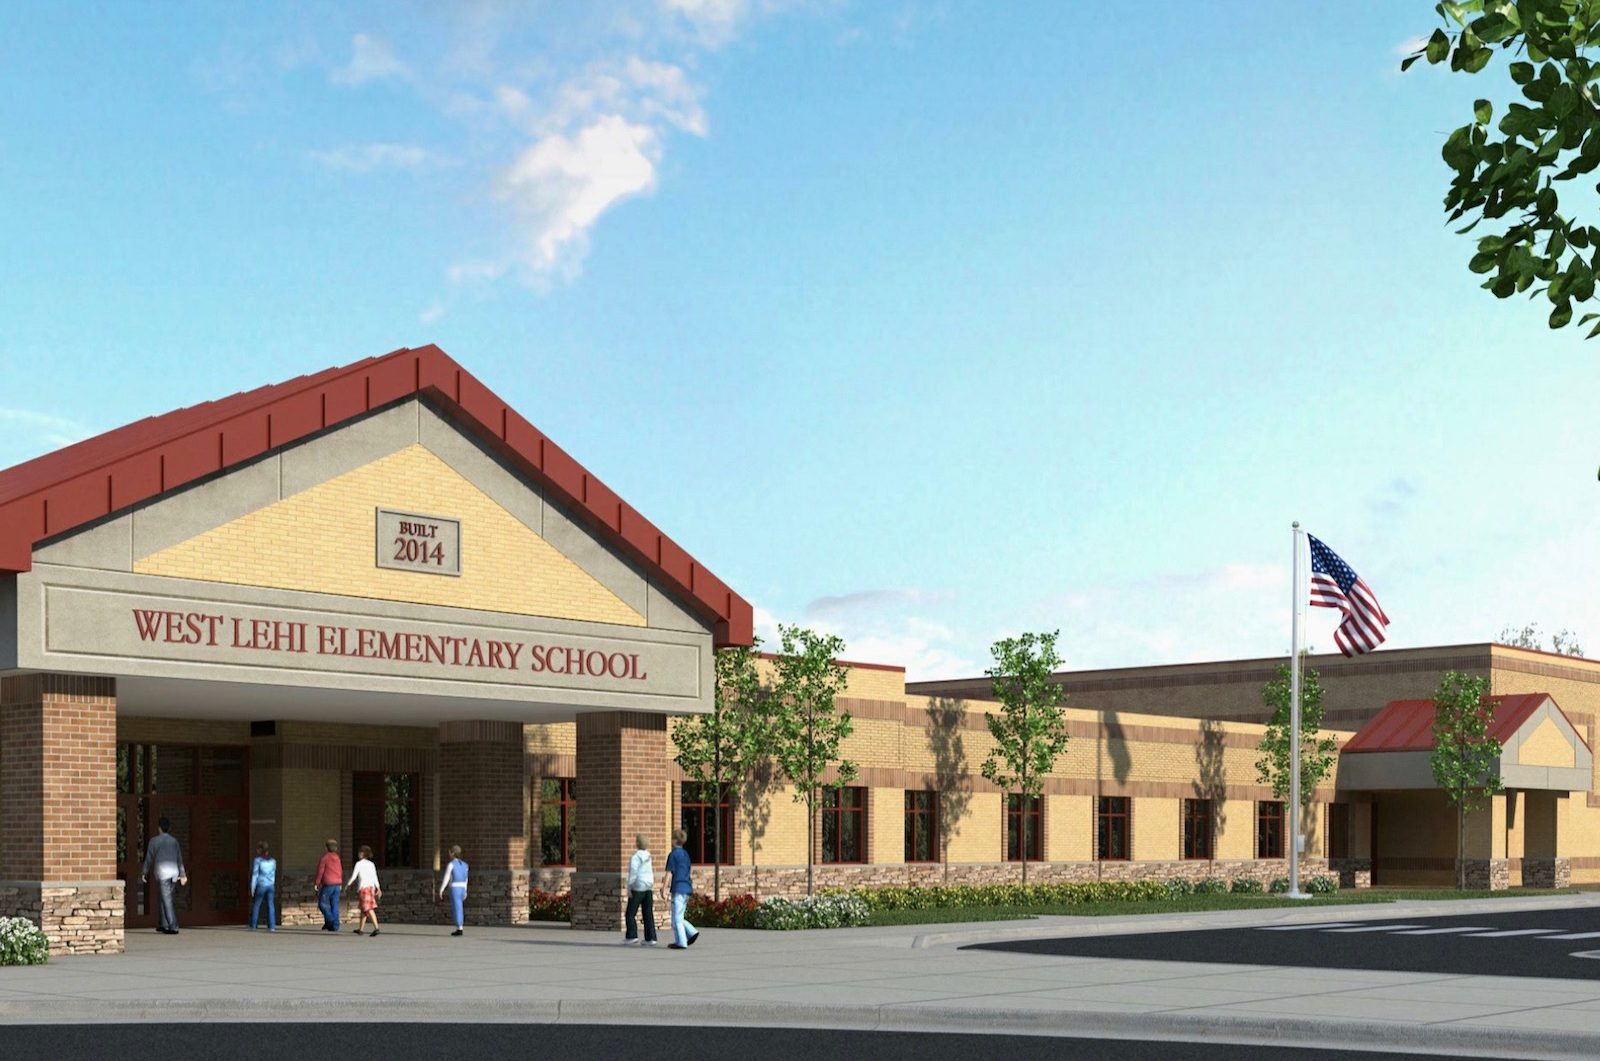 Architects Rendering of Dry Creek Elementary School | Initially name of the school was West Lehi Elementary School